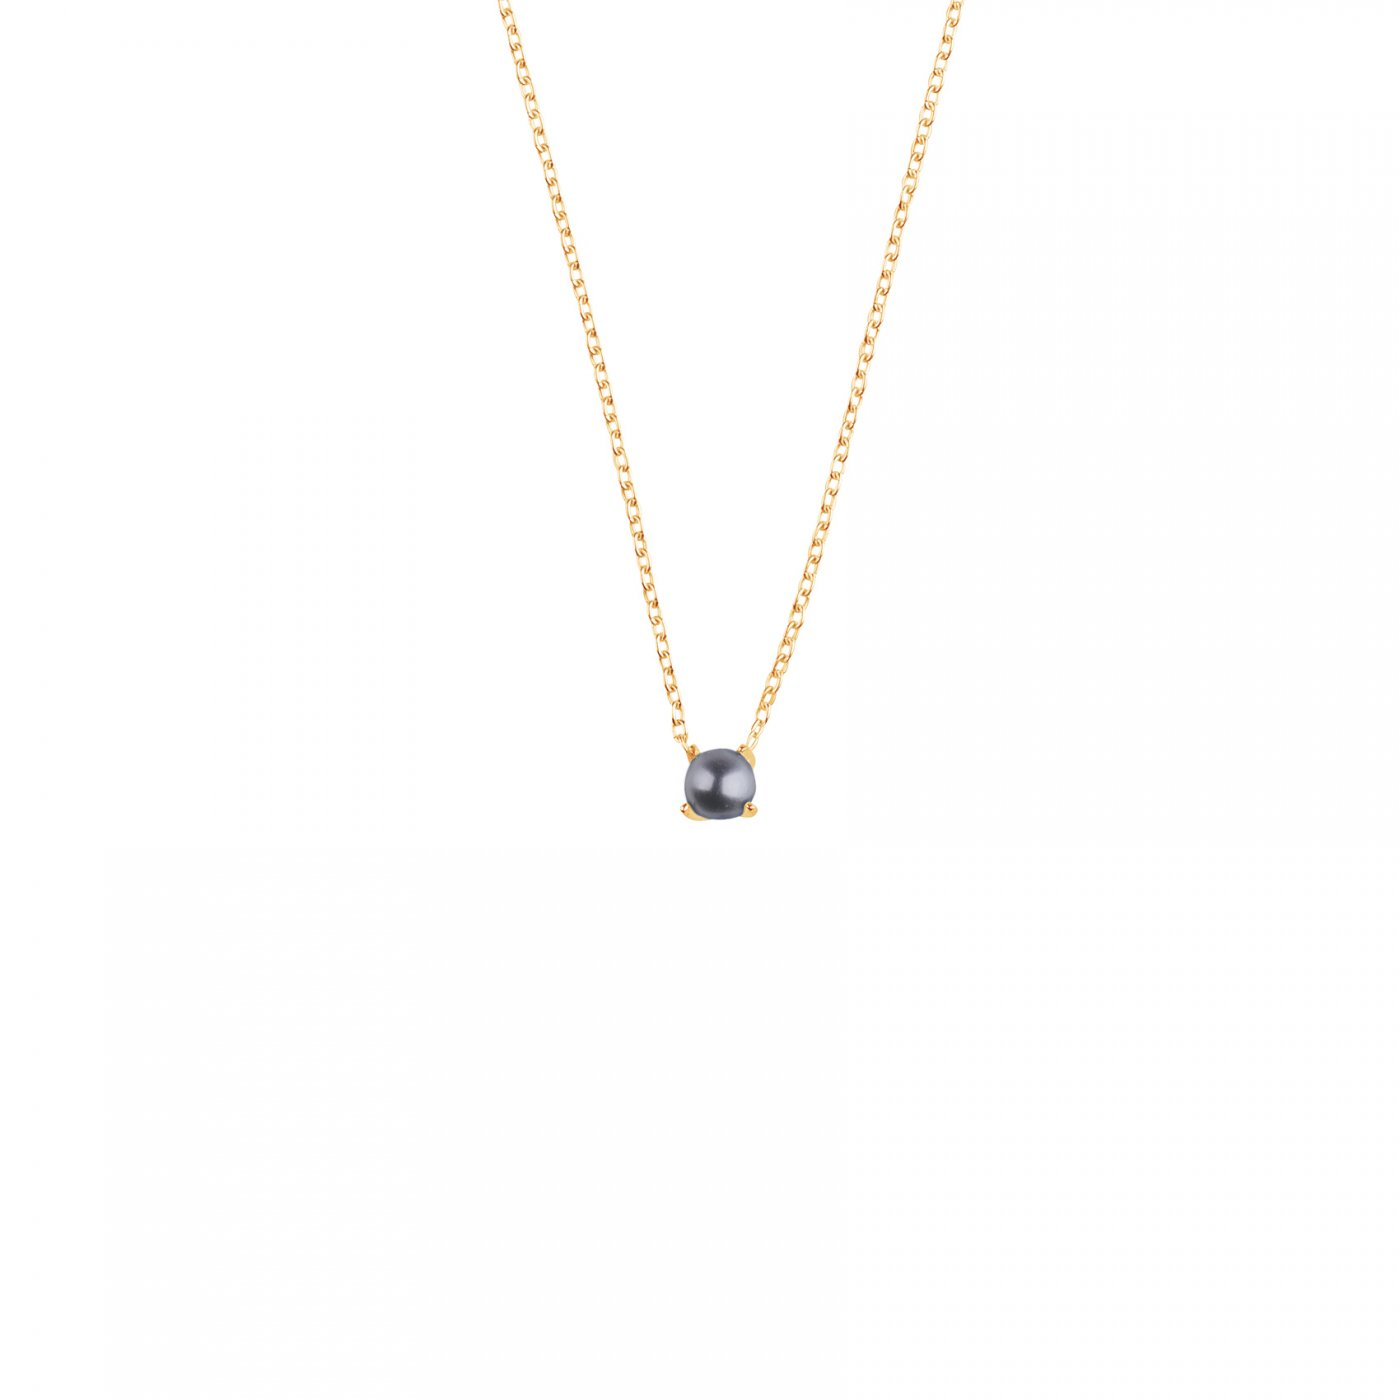 : - Petite pearl midnight necklace gold